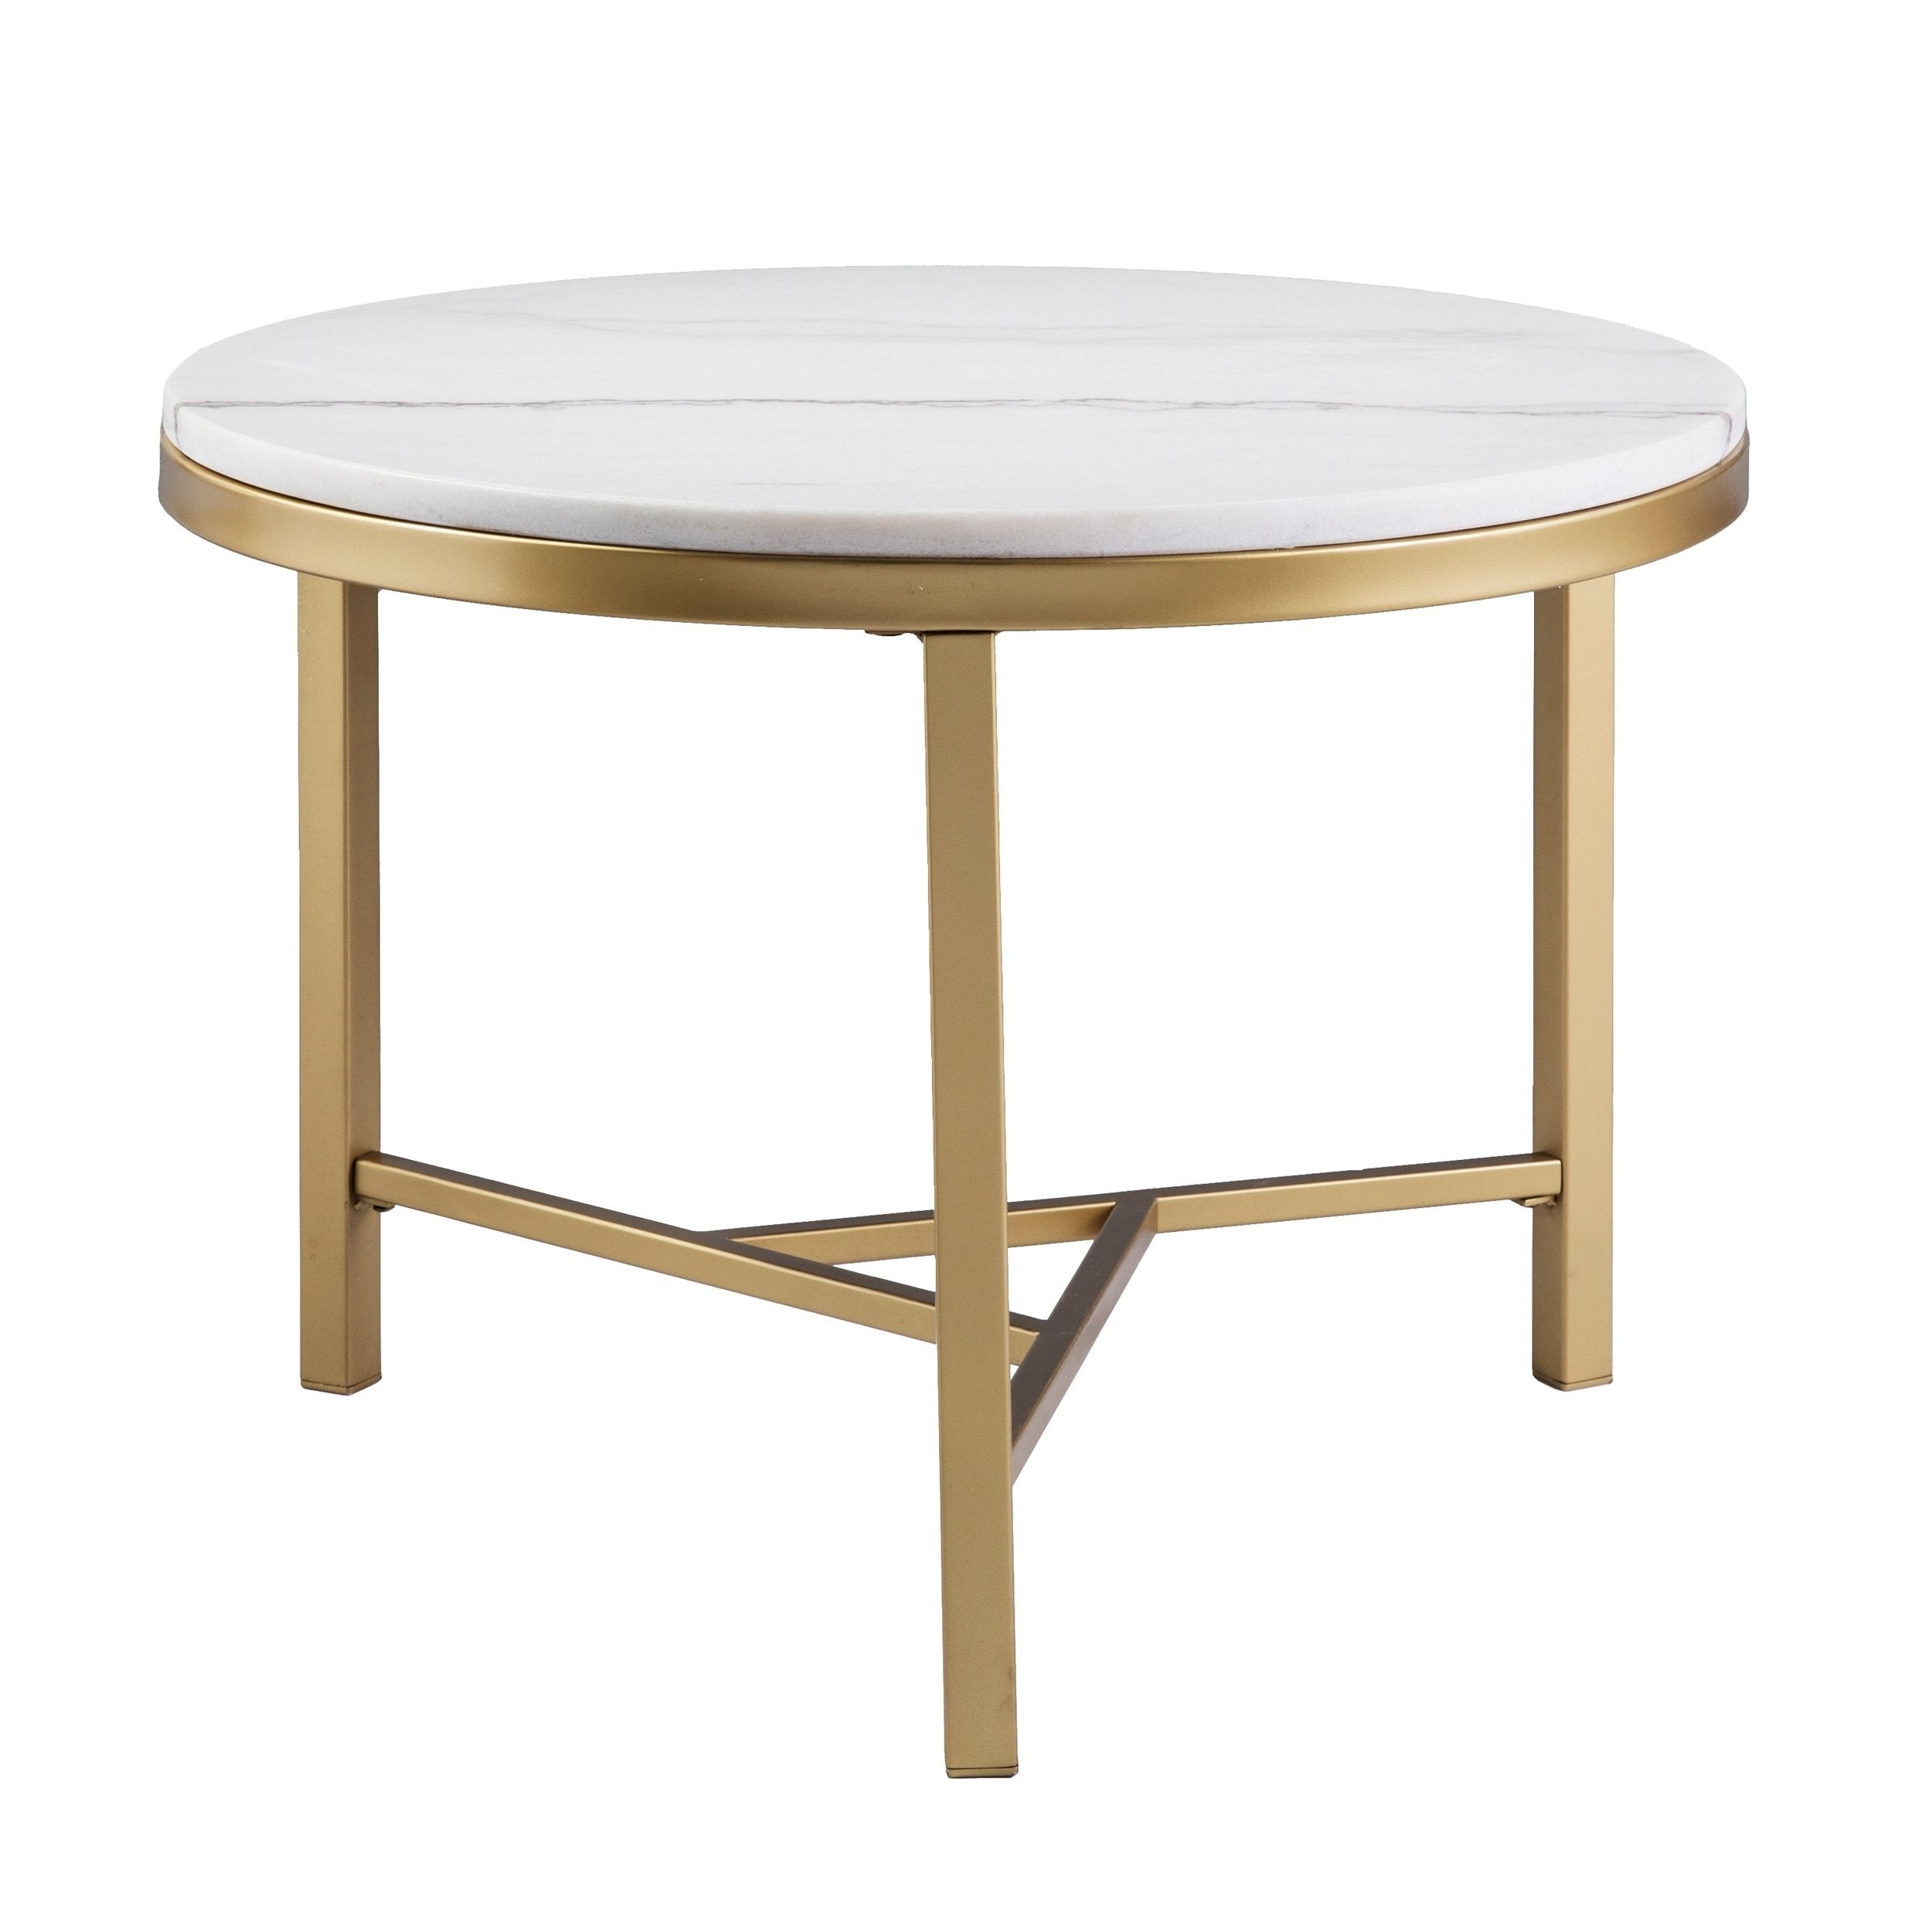 harper blvd garzeaux champagne ivory marble accent table gold round wood and metal free shipping today teal placemats napkins small student desk pine end tablecloth for bronze